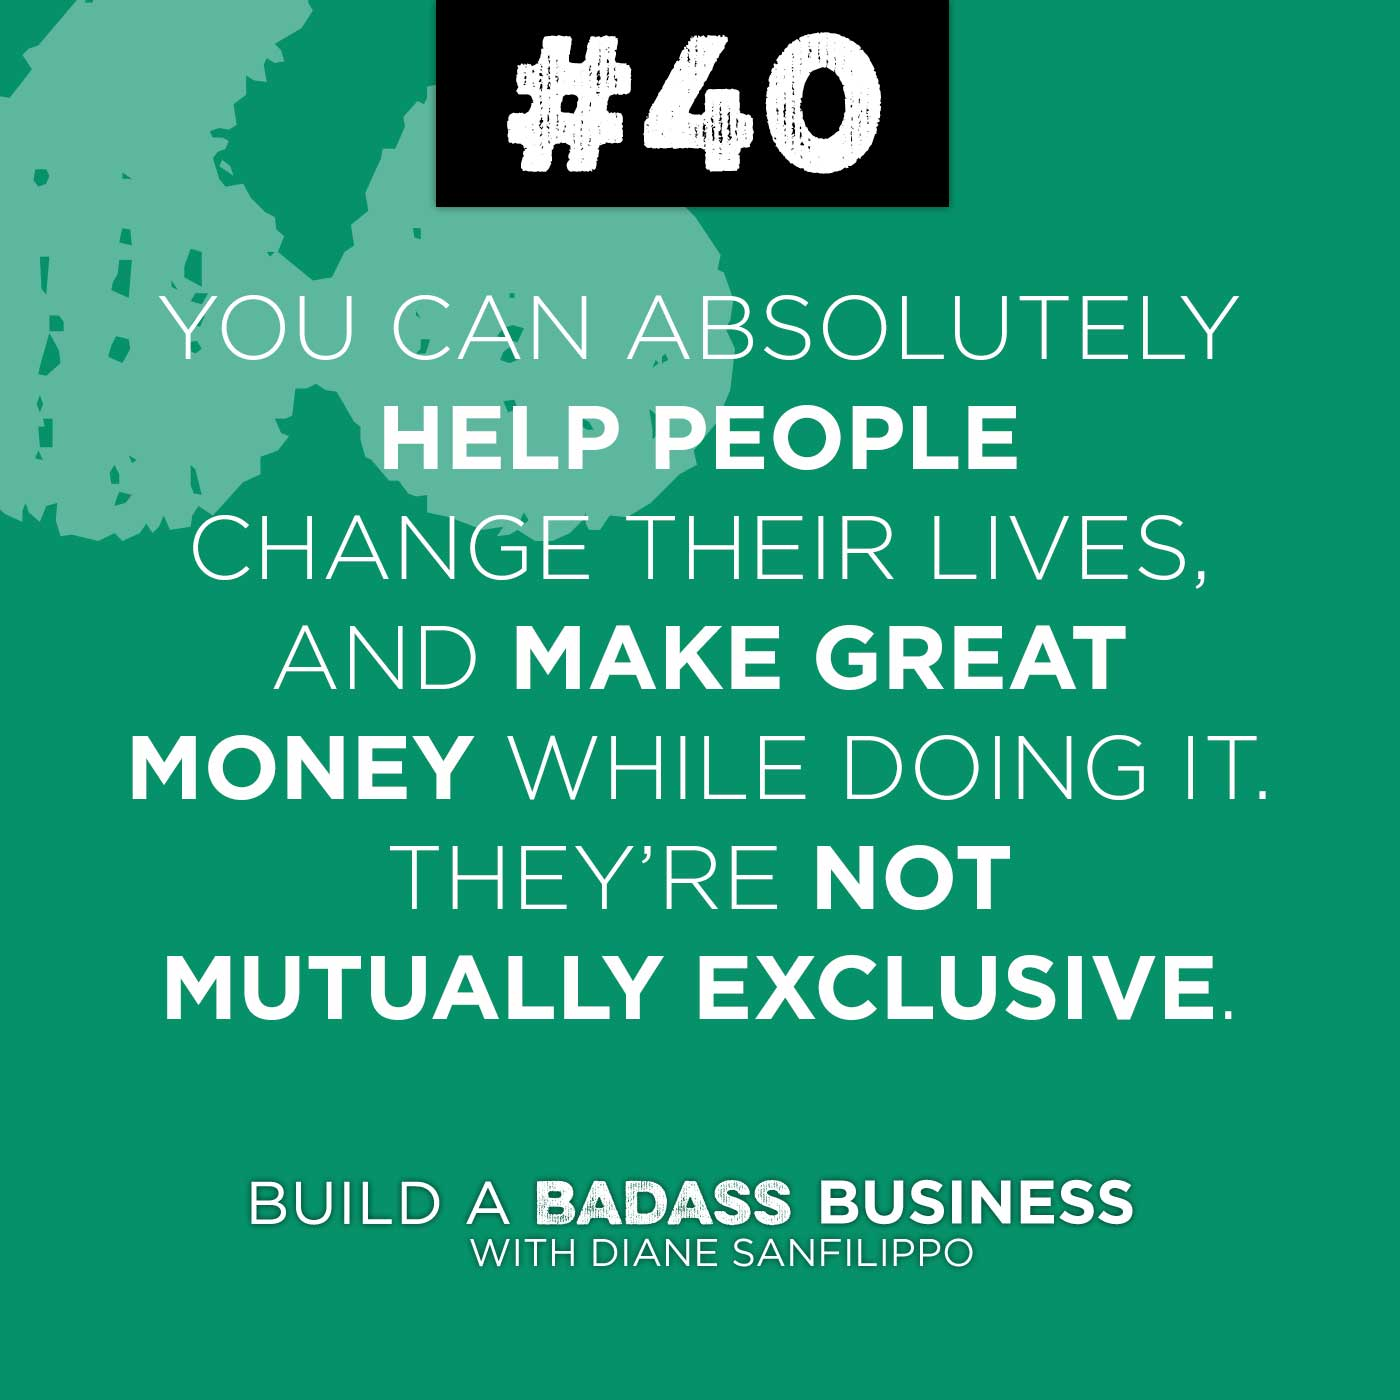 Build a Badass Business